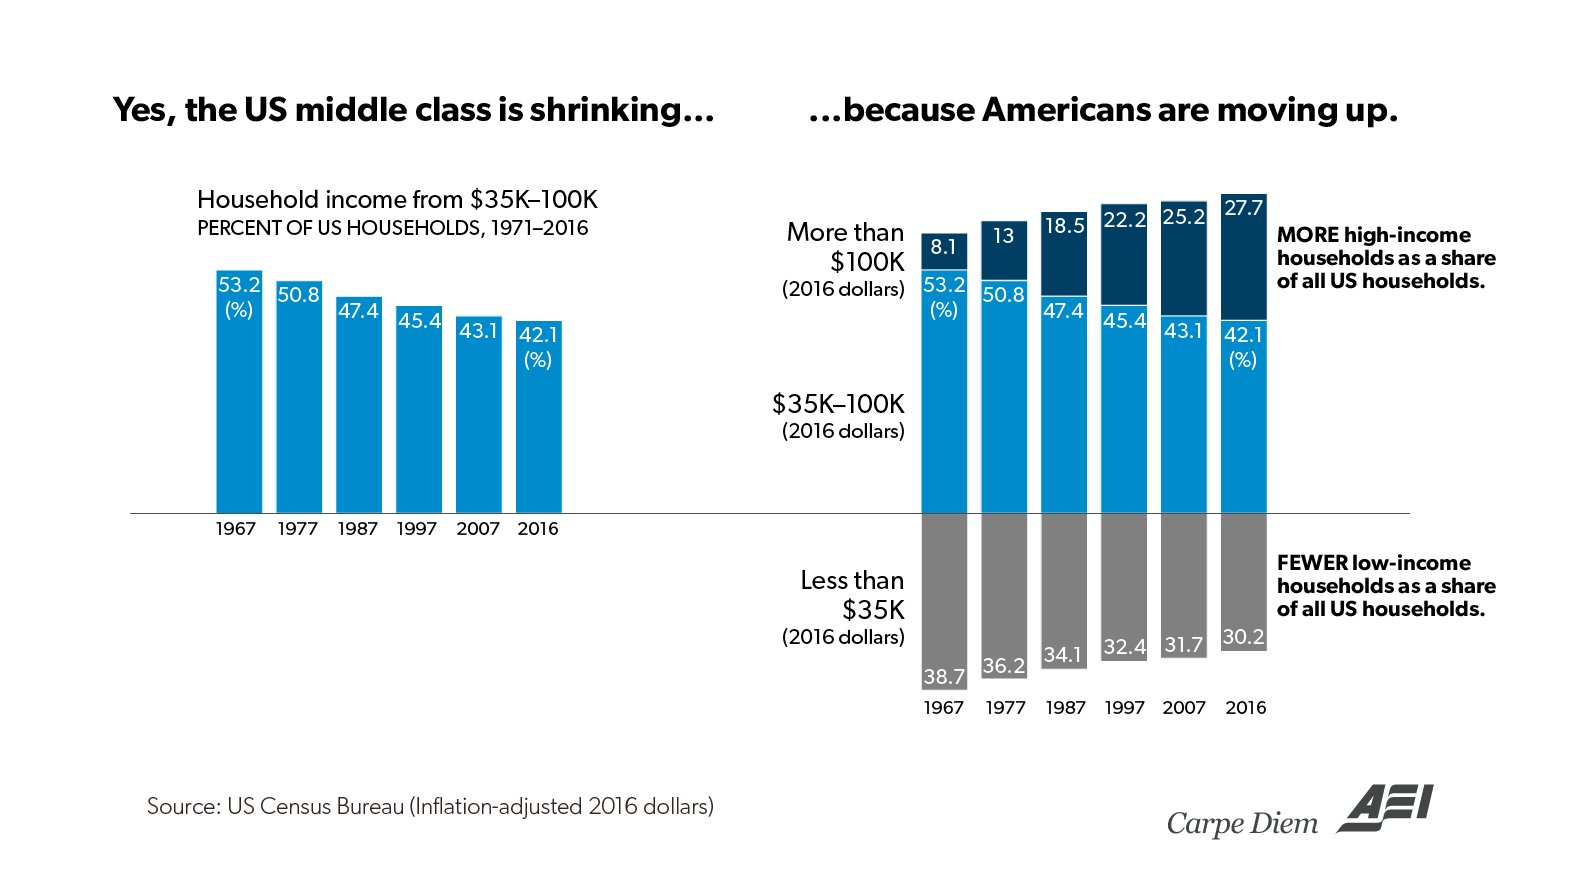 Middle Class Disappearing... Upward